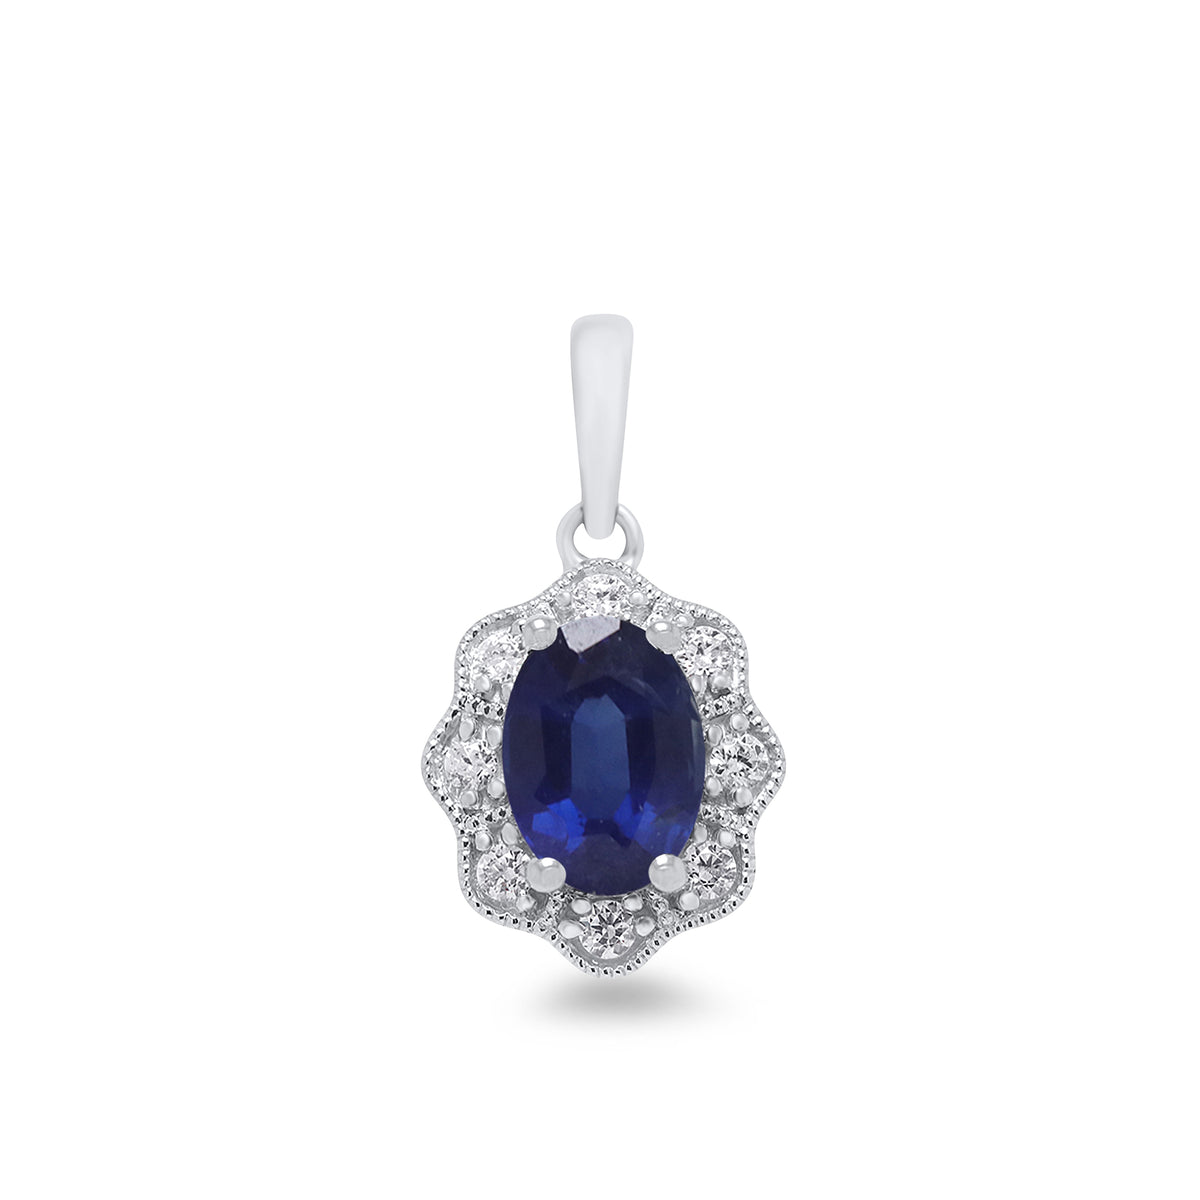 9ct White Gold Sapphire and Diamond Pendant